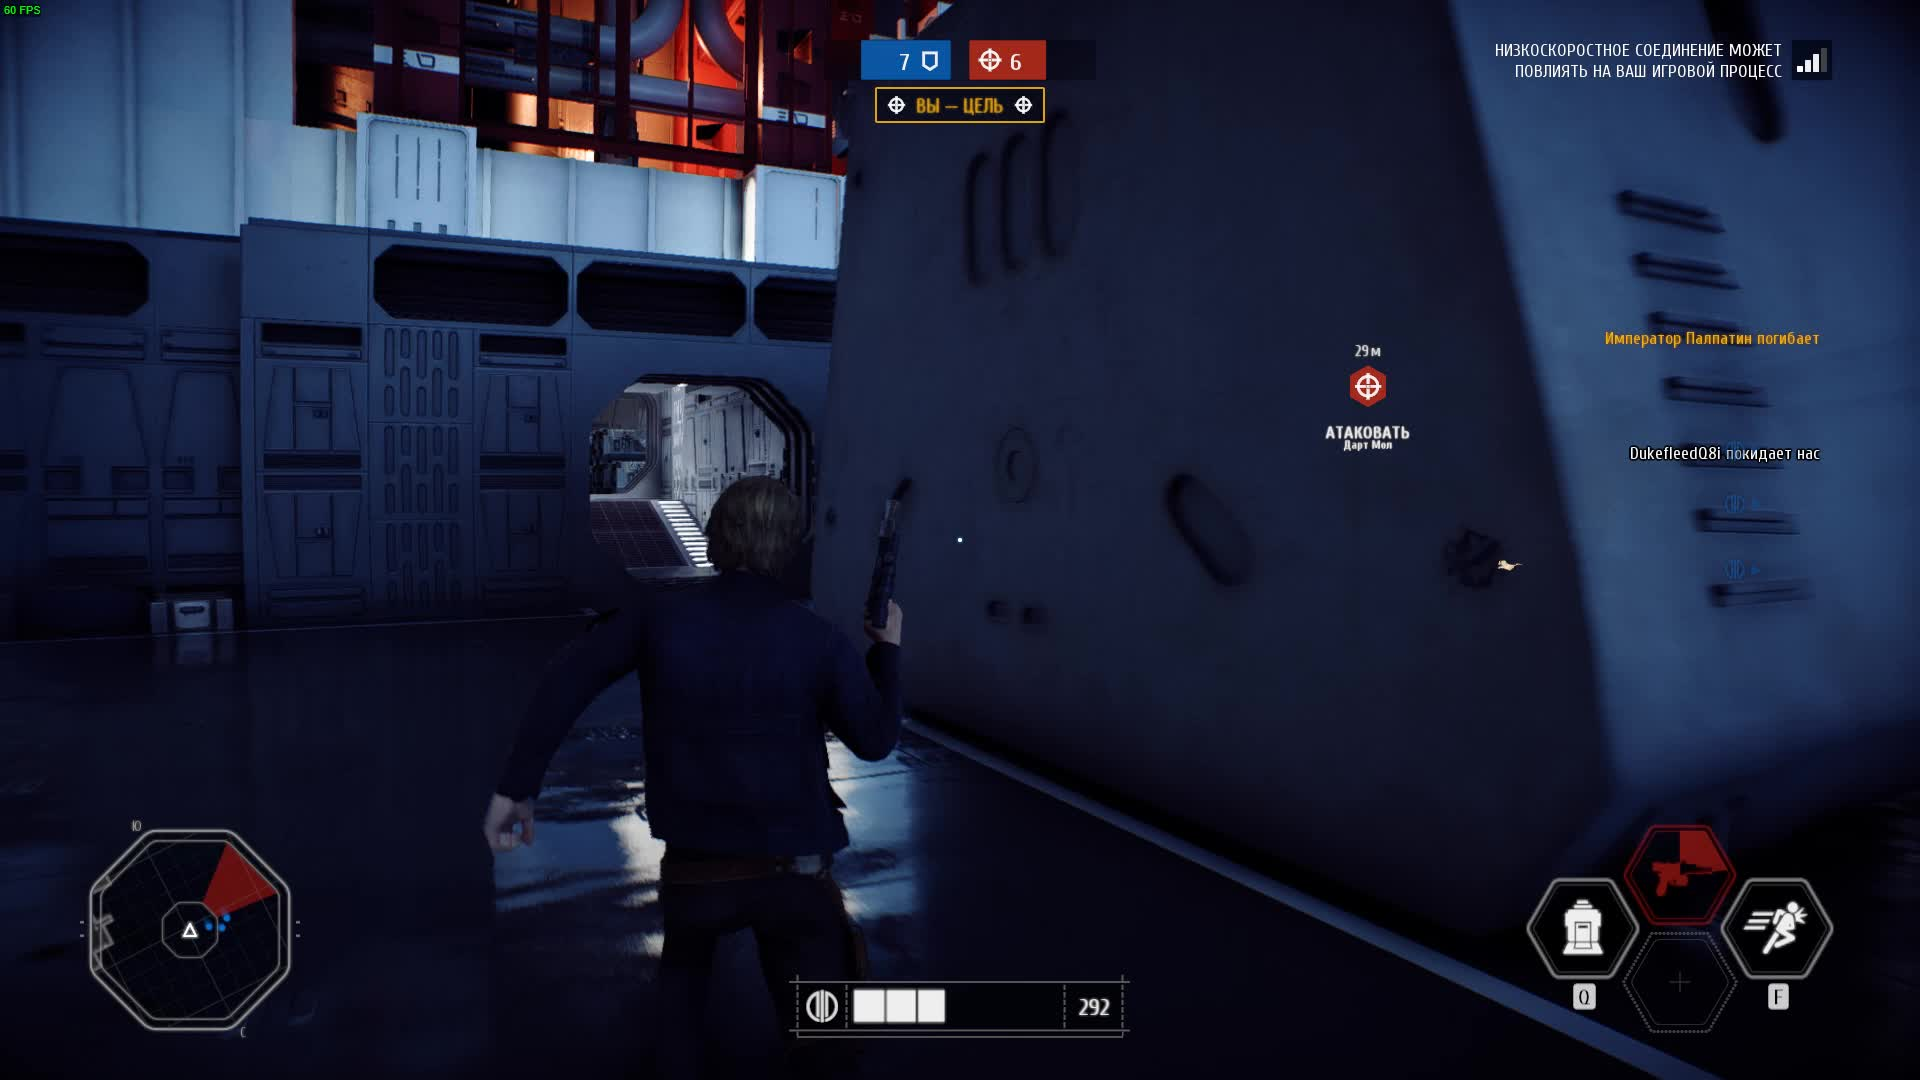 starwarsbattlefront, Never tell him odds GIFs